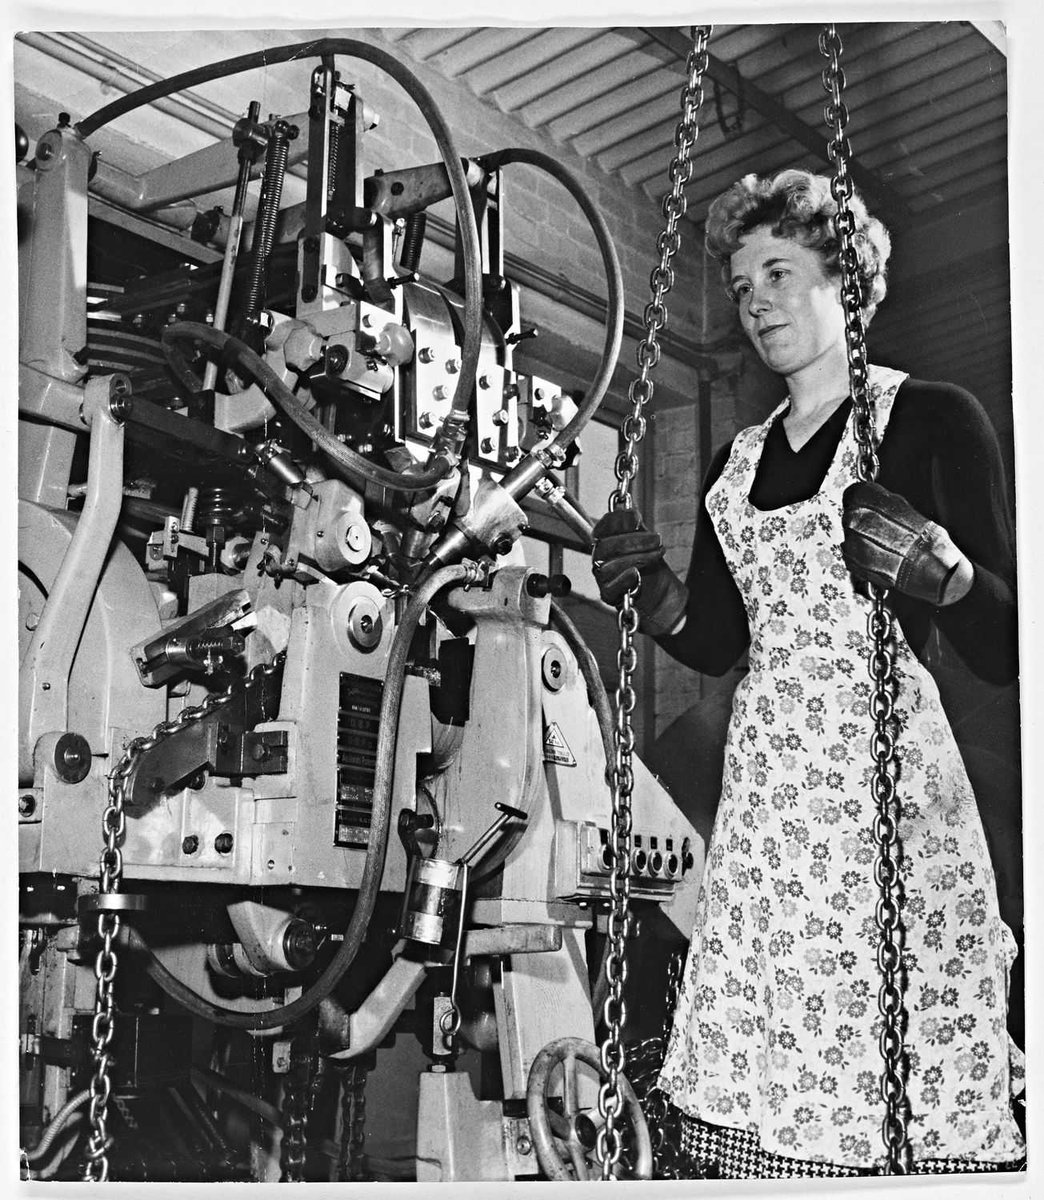 At number 2 in the most popular photo, 82 views, is Alice Griffiths making chains at the Joseph Woodhouse firm in Cradley Heath in 1961 https://bit.ly/3bmaToS #Archive30 #FavouriteItem Alice's daughters were thrilled to find this photo of their mother: https://bit.ly/2UAmcTGpic.twitter.com/E9IY4Ygflz